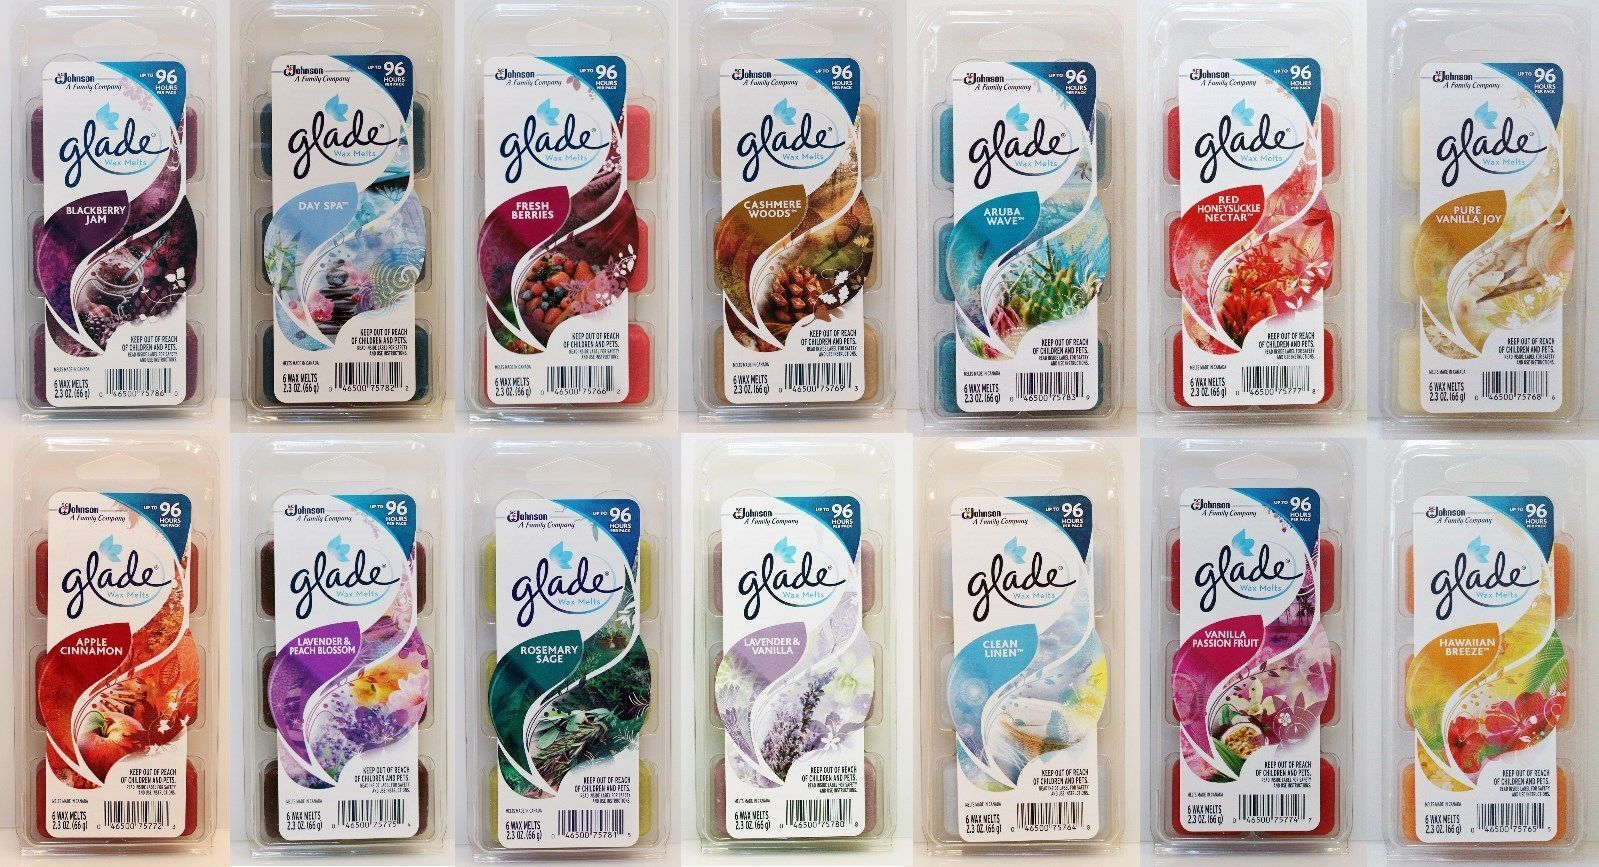 NEW Glade WAX melt refill air freshener Assorted Scents and